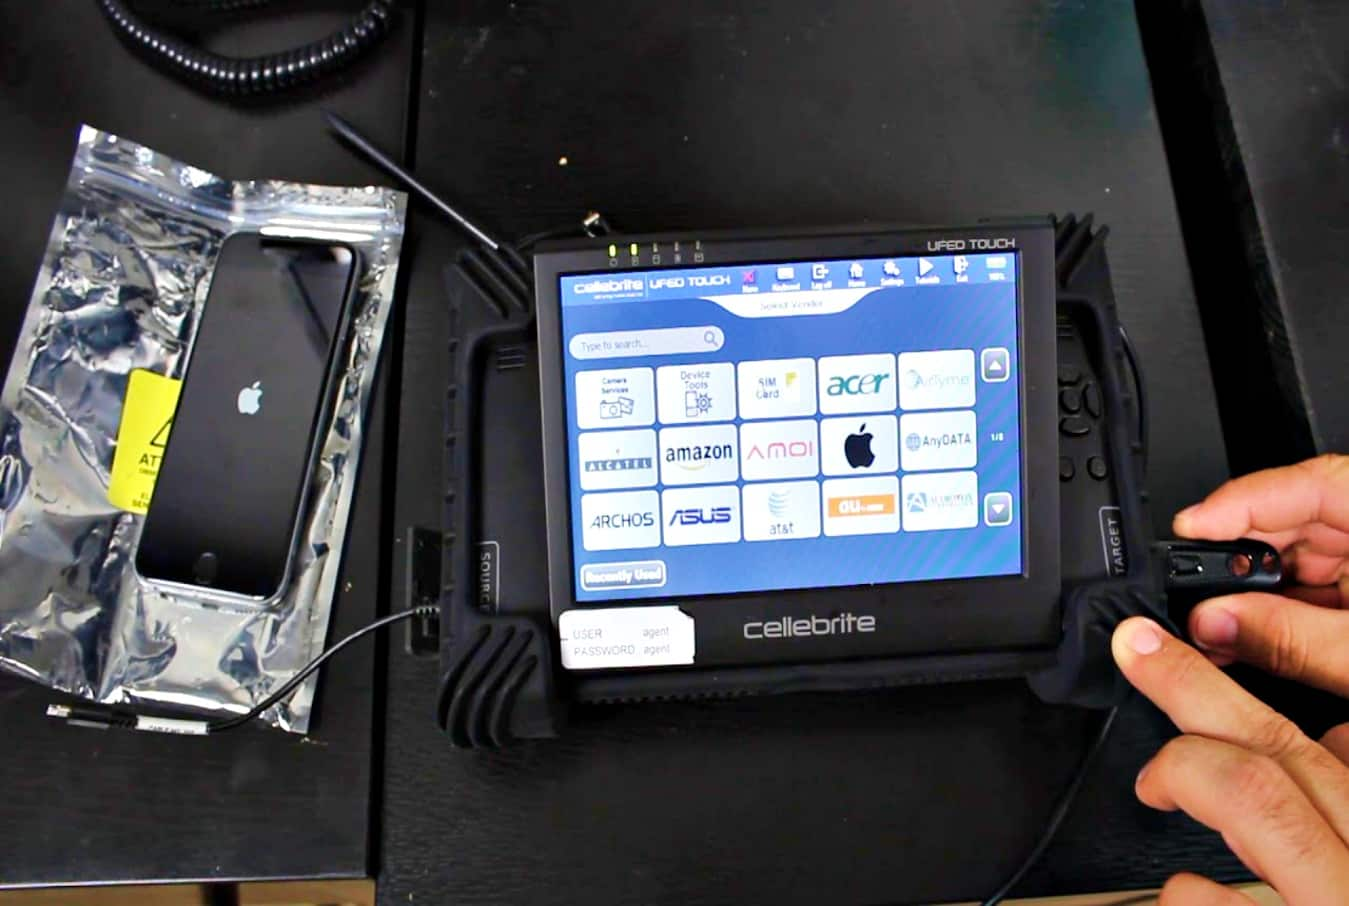 Cellebrite claims its new tool unlocks almost any iOS or Android device